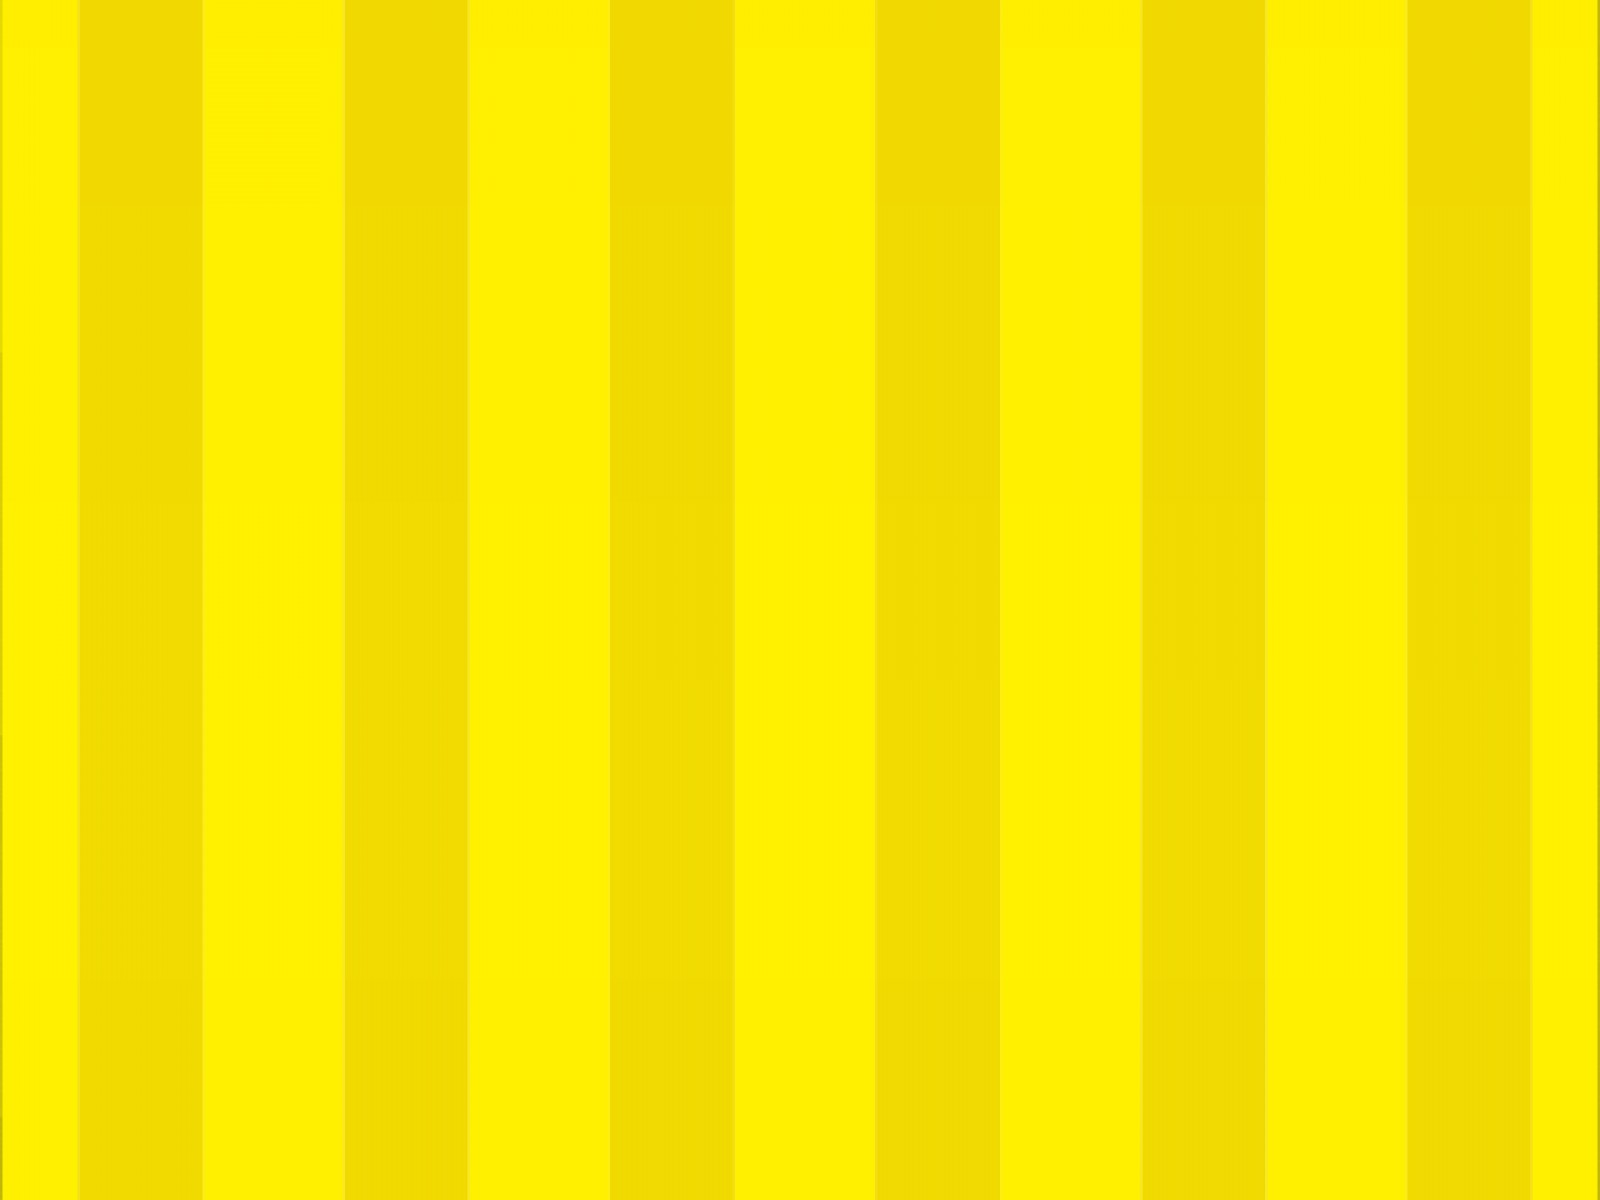 Yellow Latest HD Wallpapers